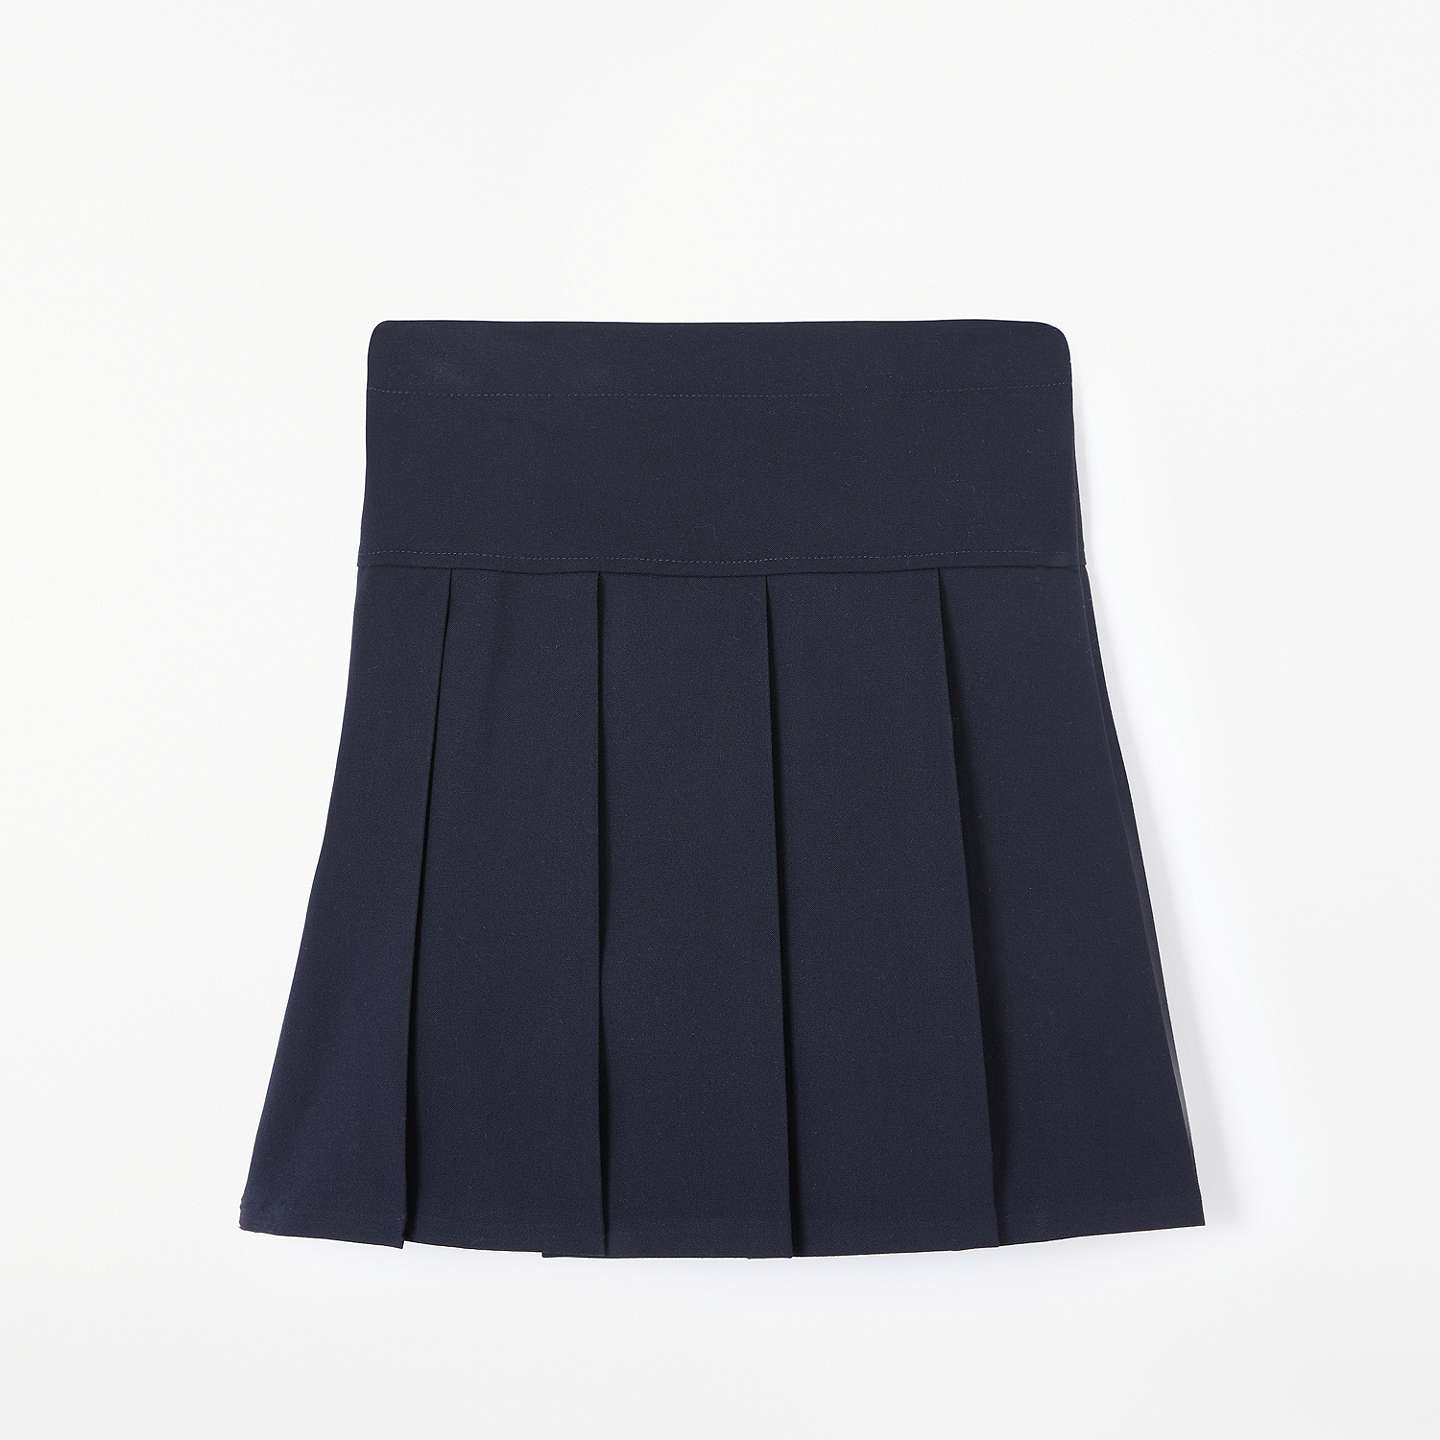 BuyJohn Lewis Girls' Panel Pleated School Skirt, Navy, 4 years Online at johnlewis.com